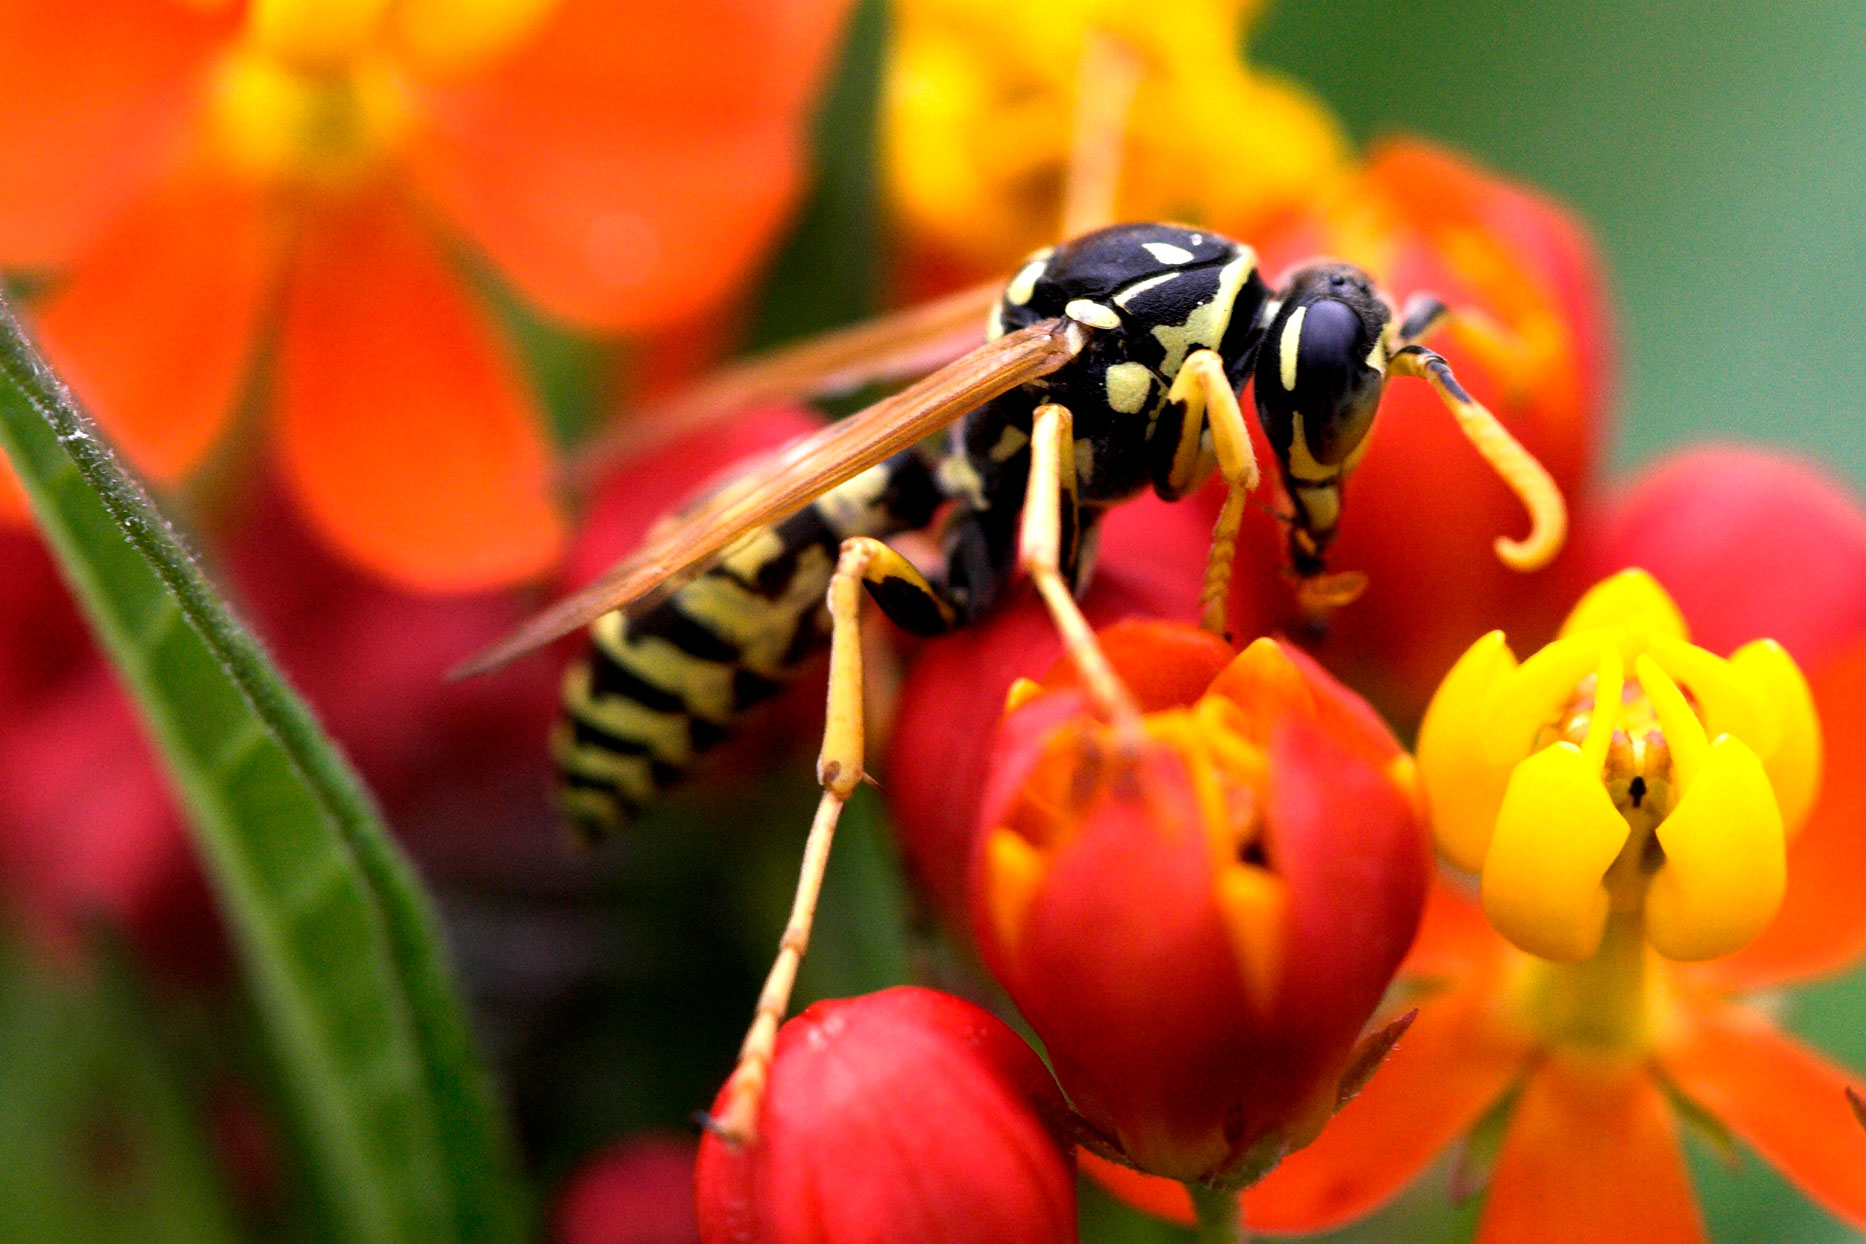 yellowjacket on milkweed flower